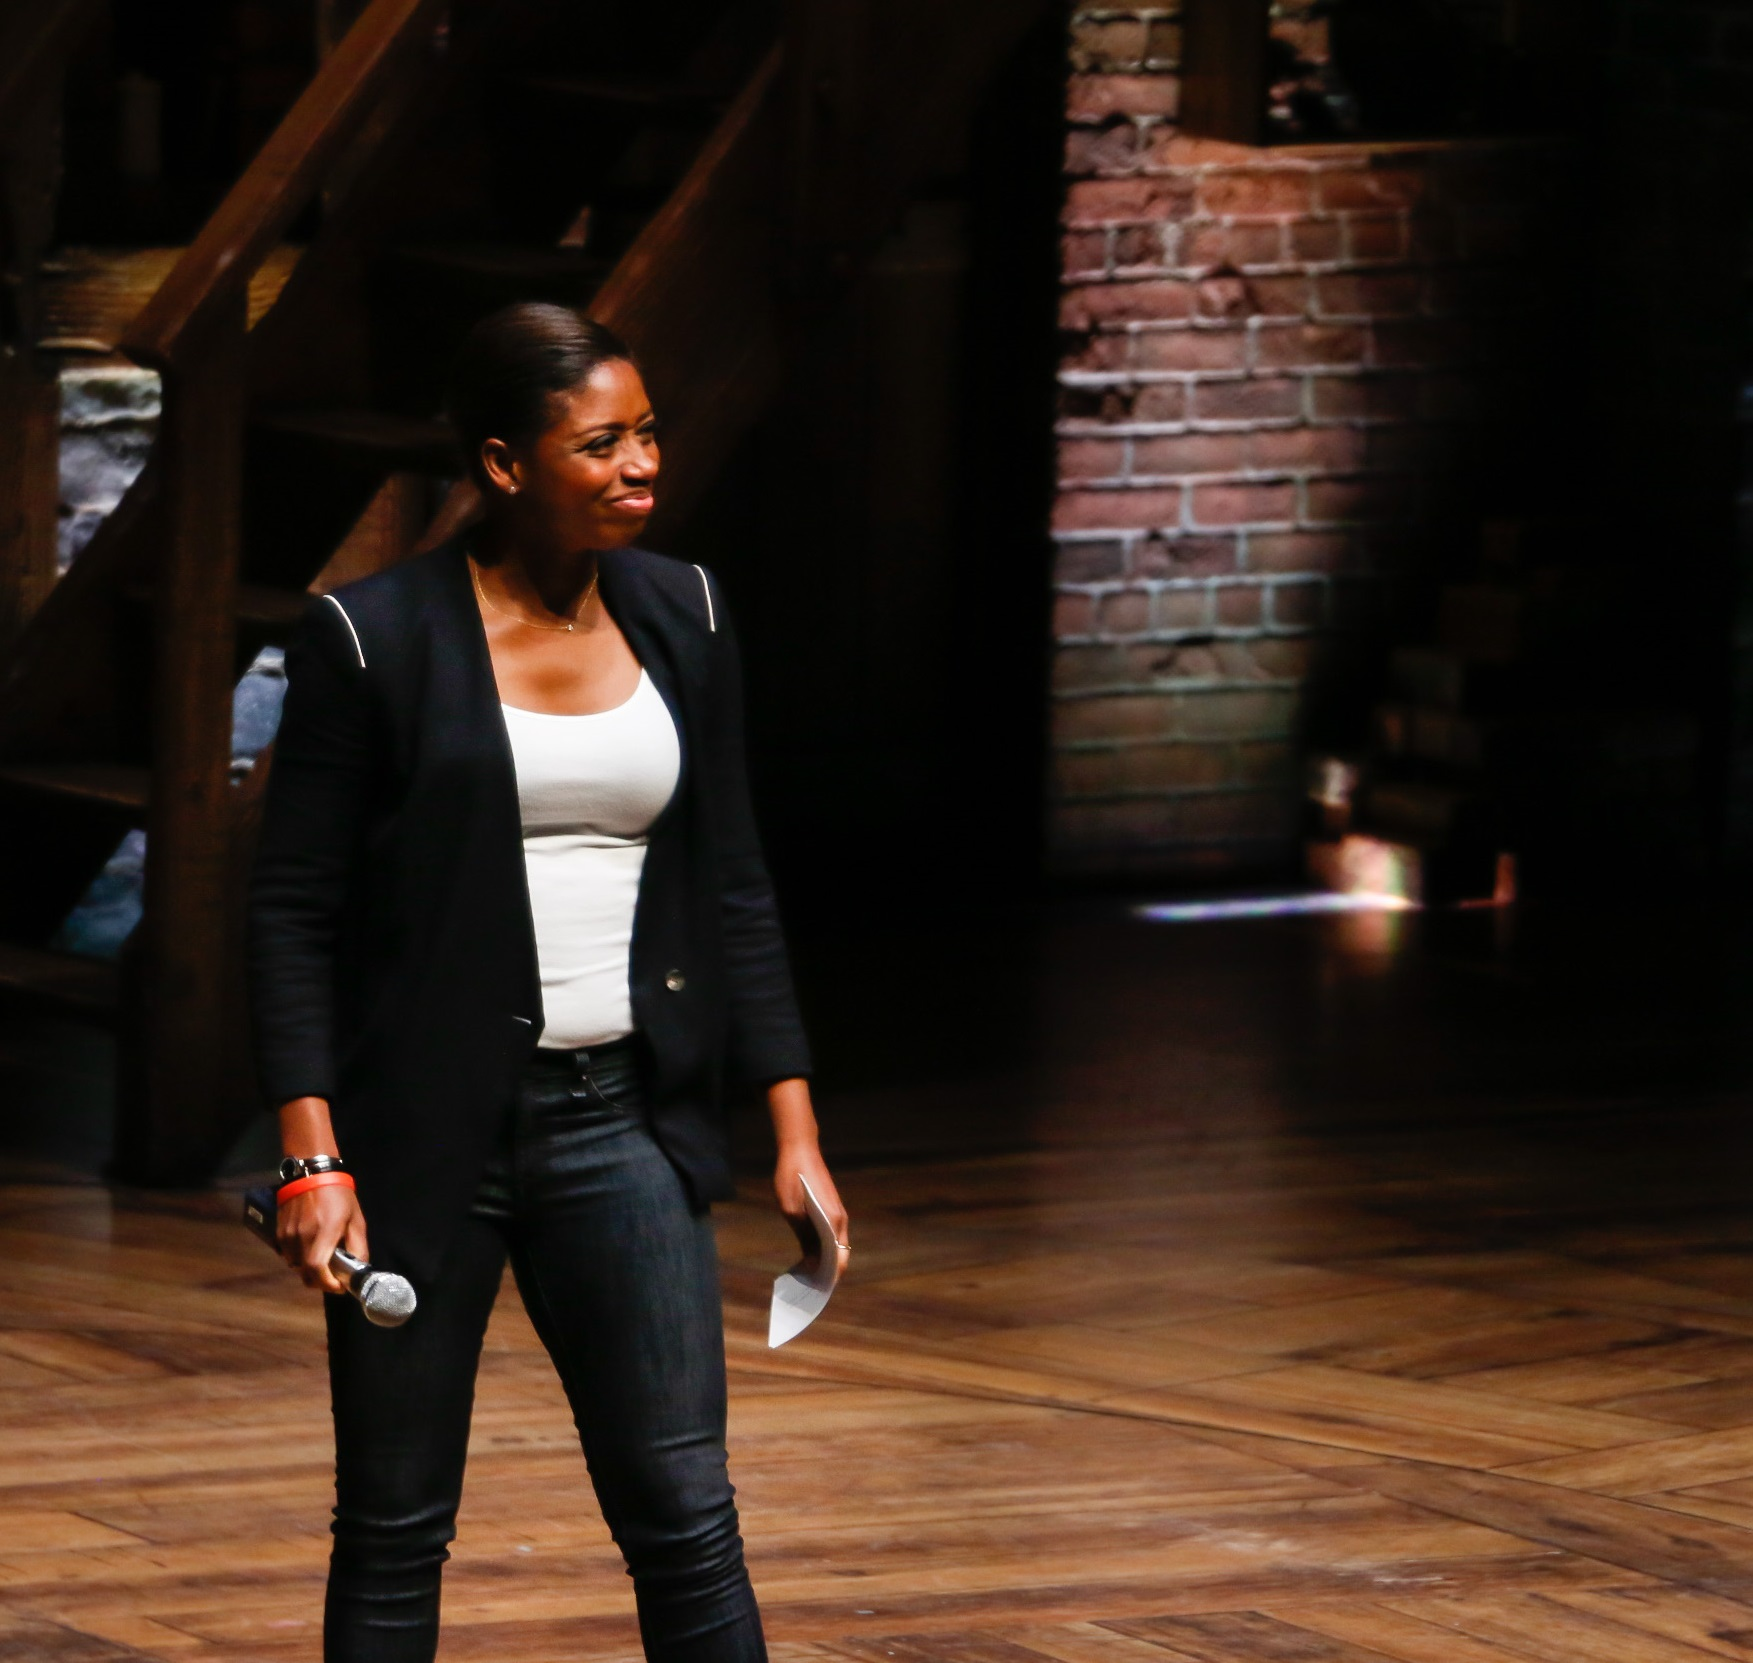 Montego Glover (plays Angelica Schuyler) emcees student performances during The Hamilton Education Program at CIBC Theatre. Photo by Mary Crylen.